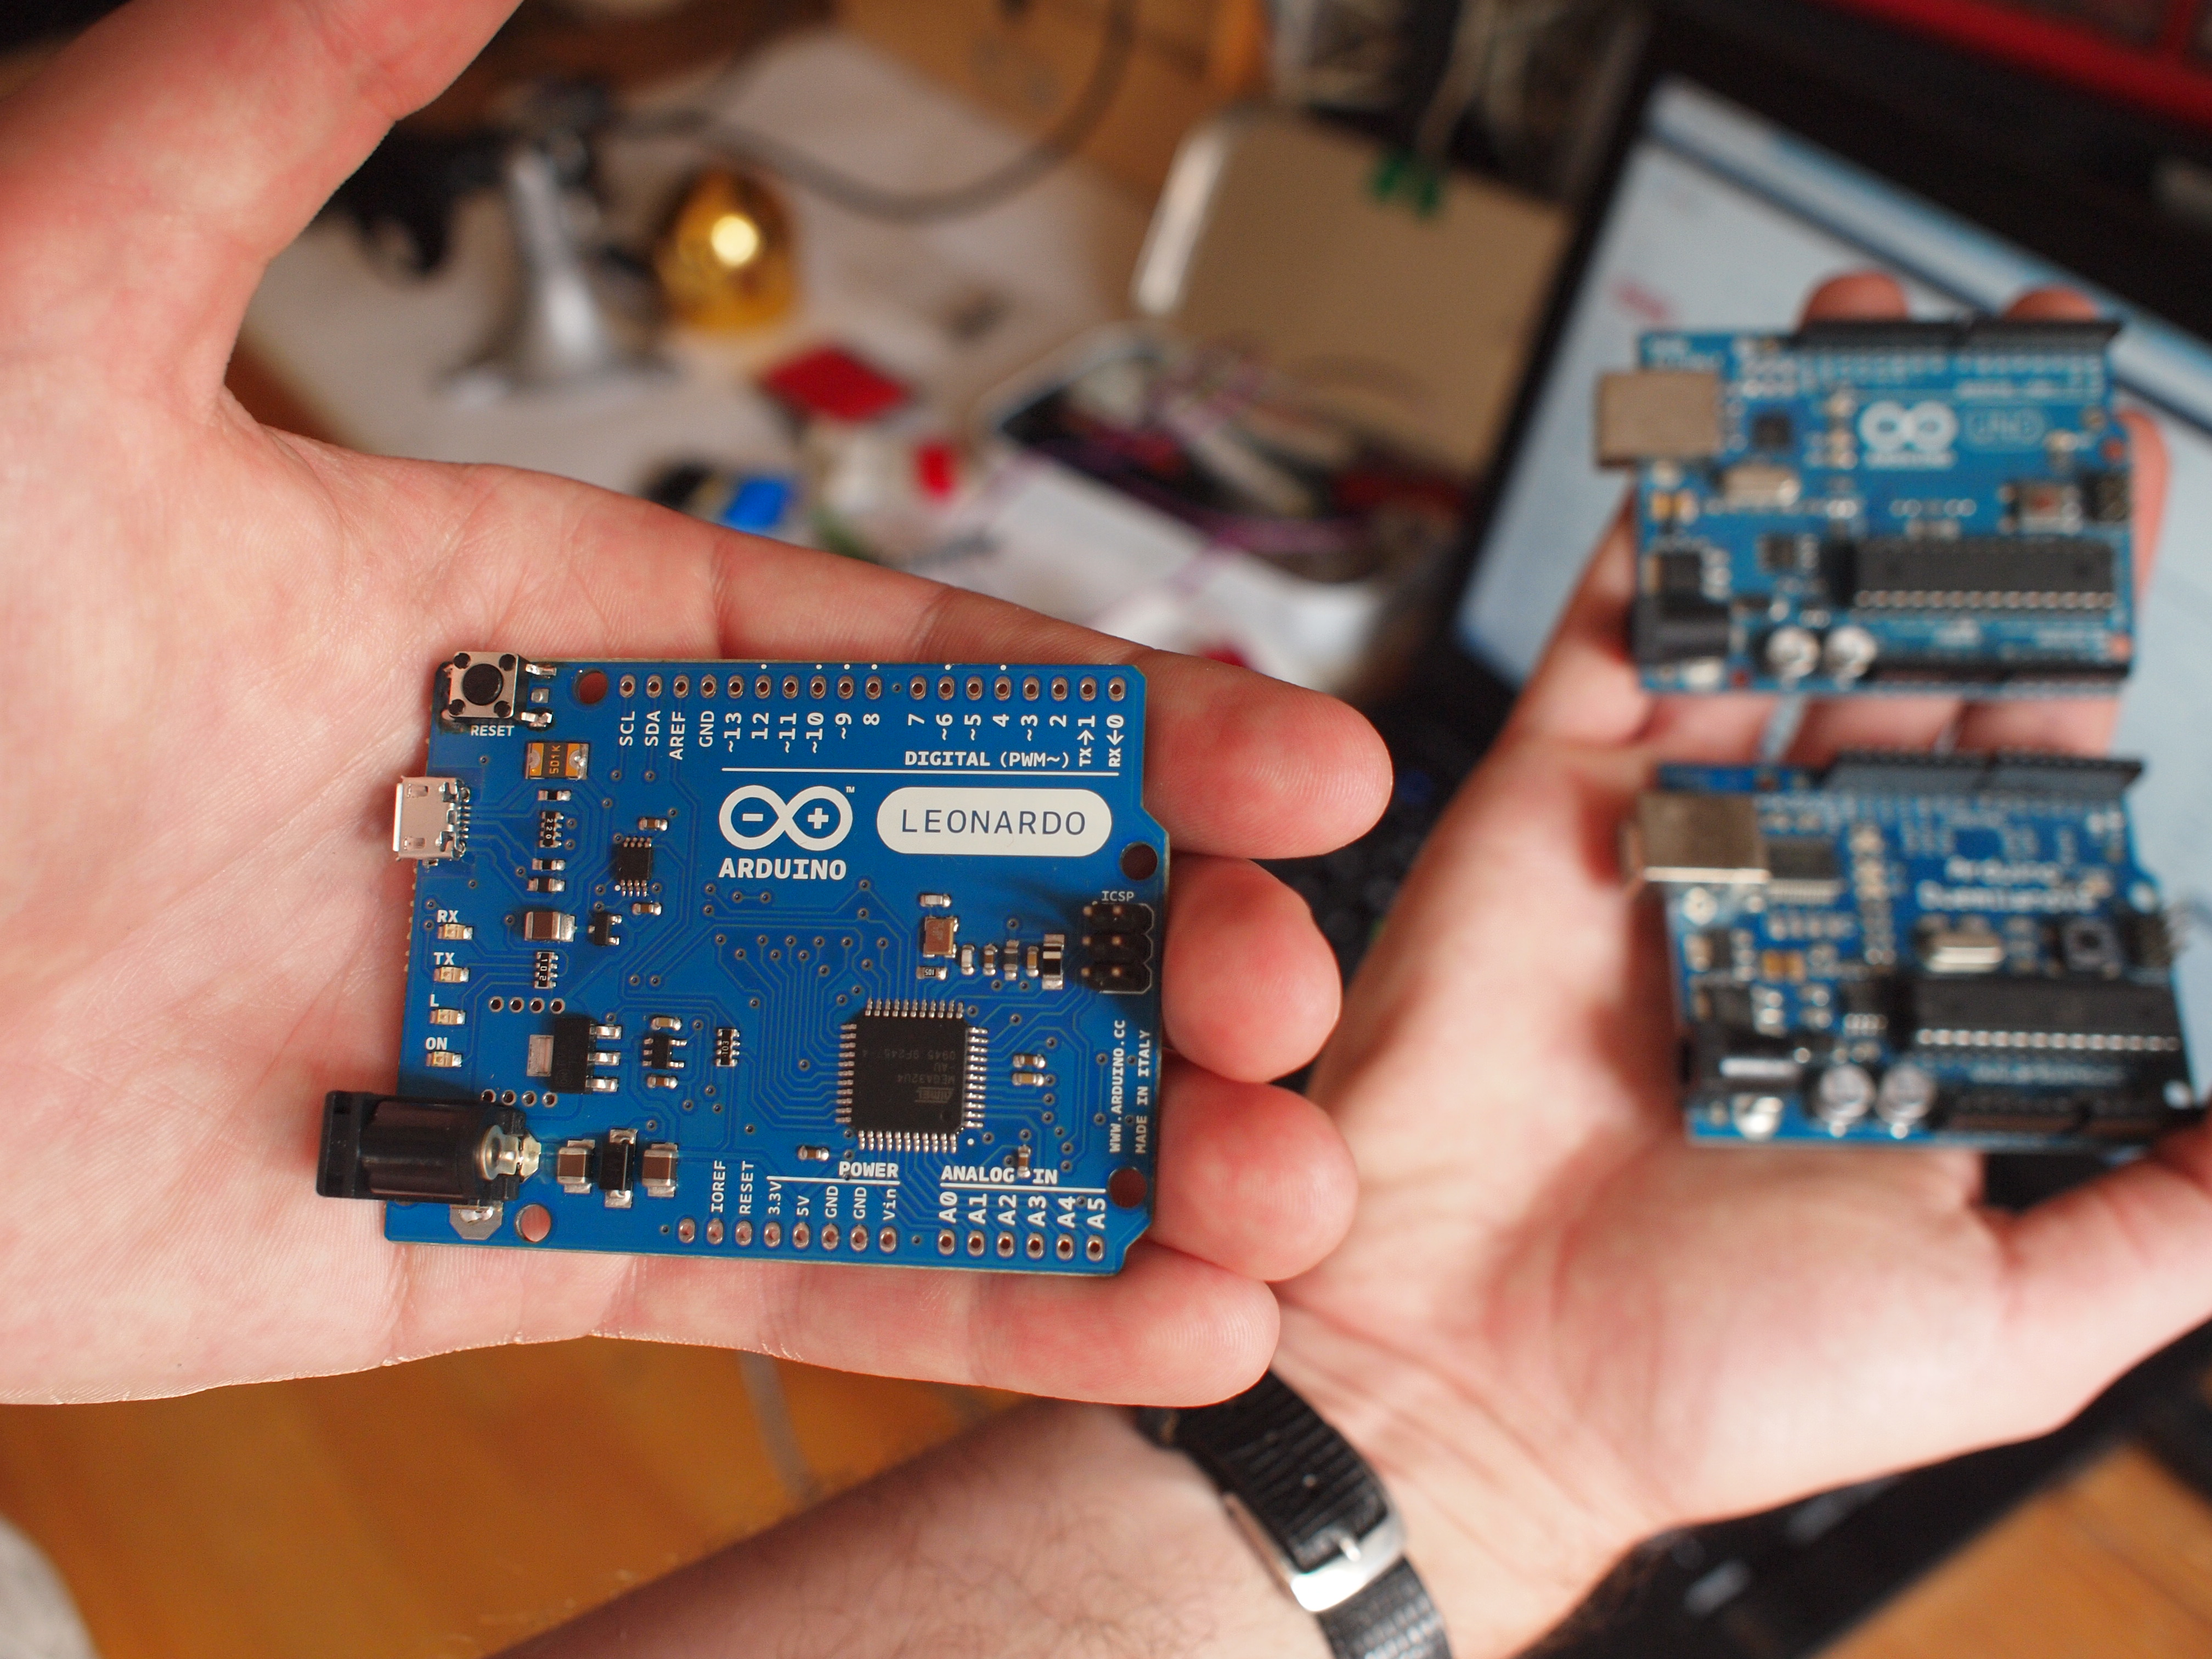 How to Download and Use Online Data with Arduino